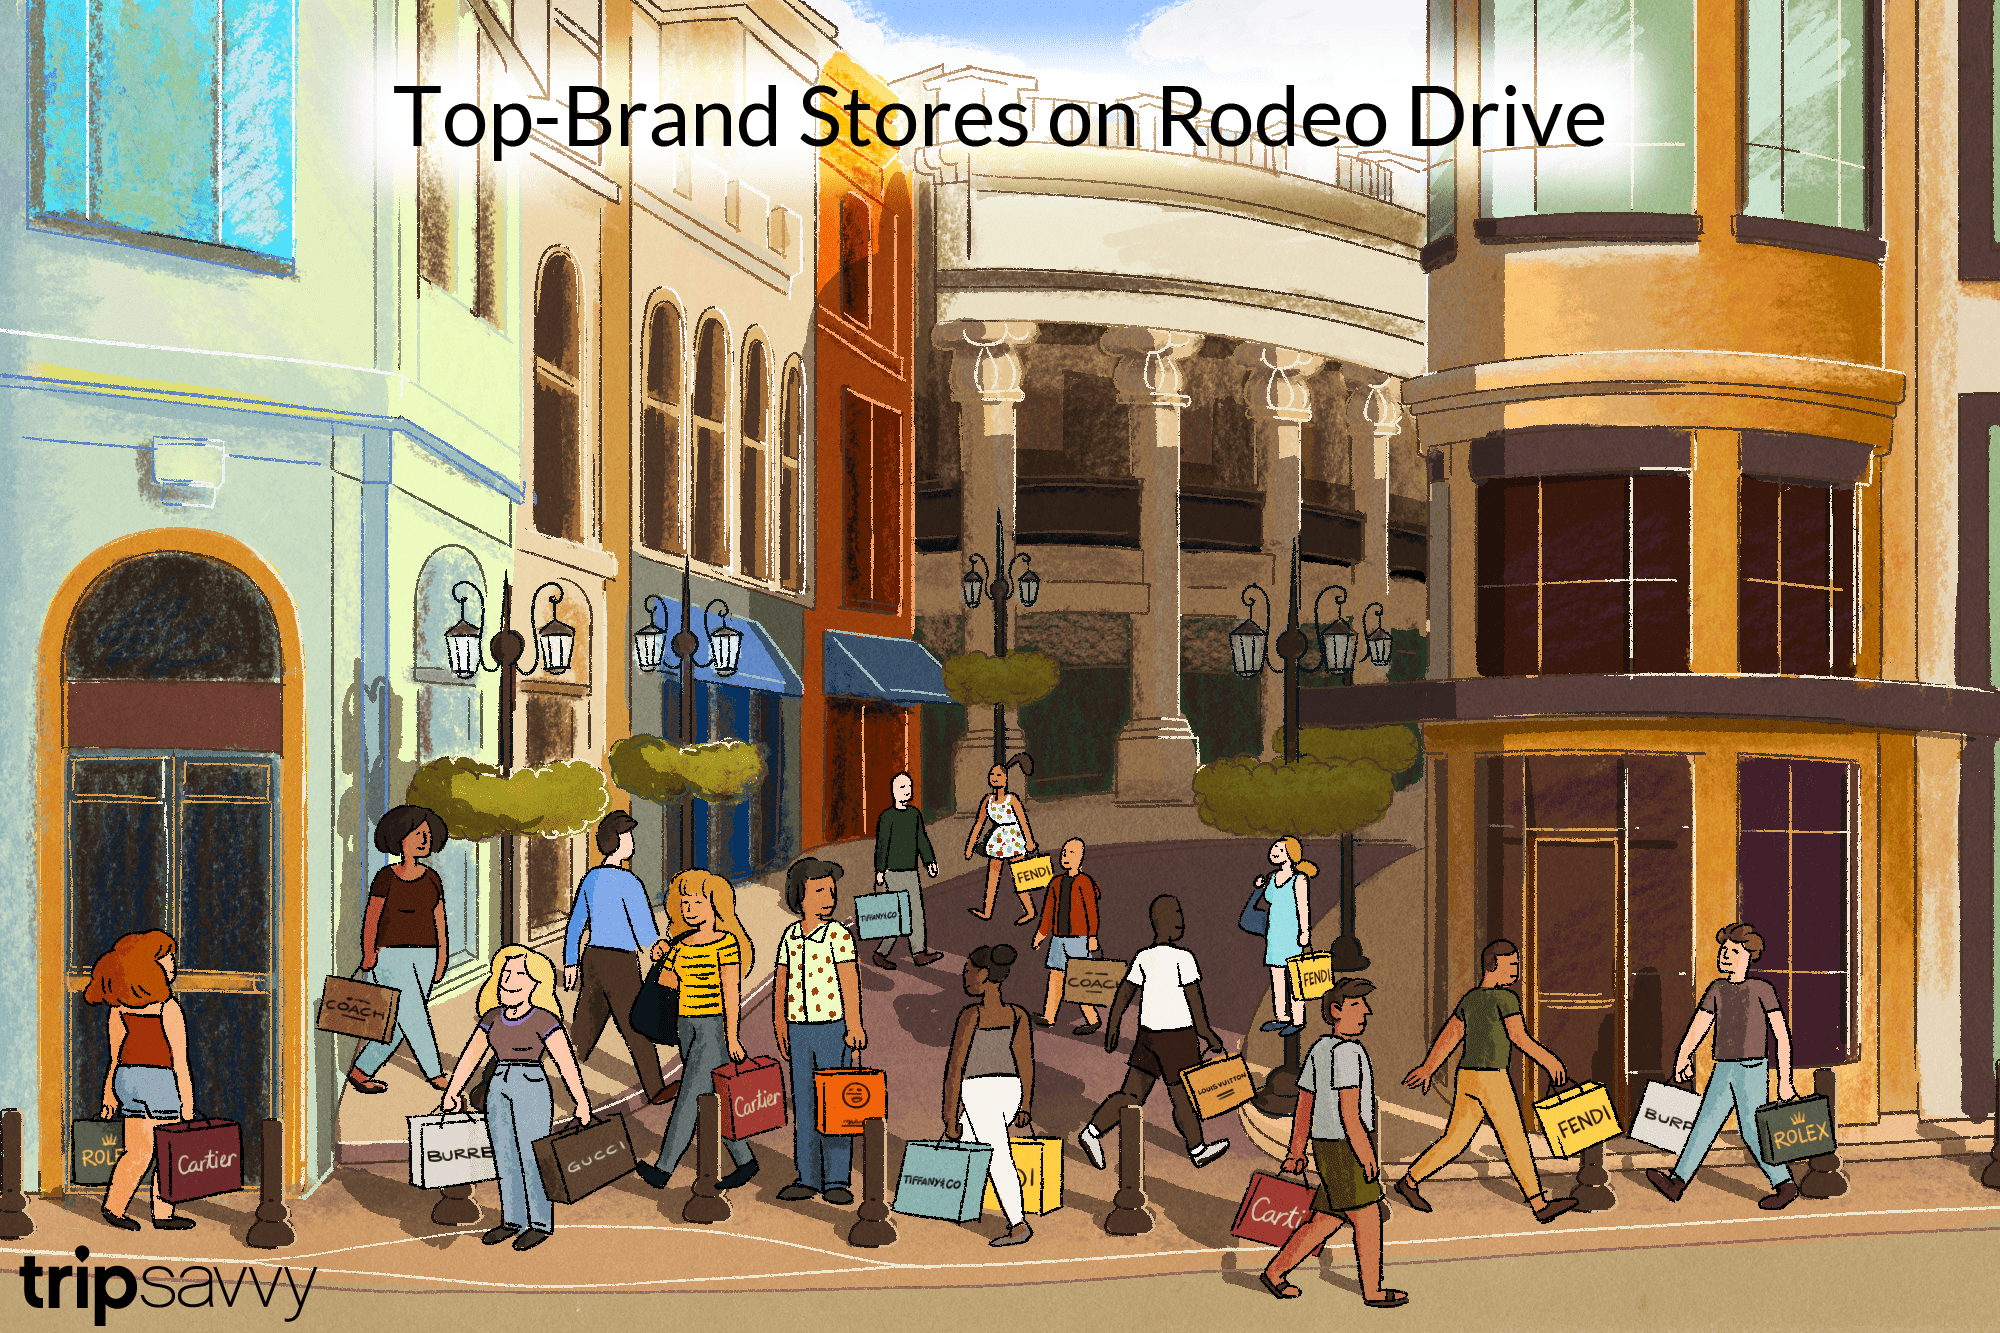 an illustration of people shopping on Rodeo Drive and carrying bags with the brand names